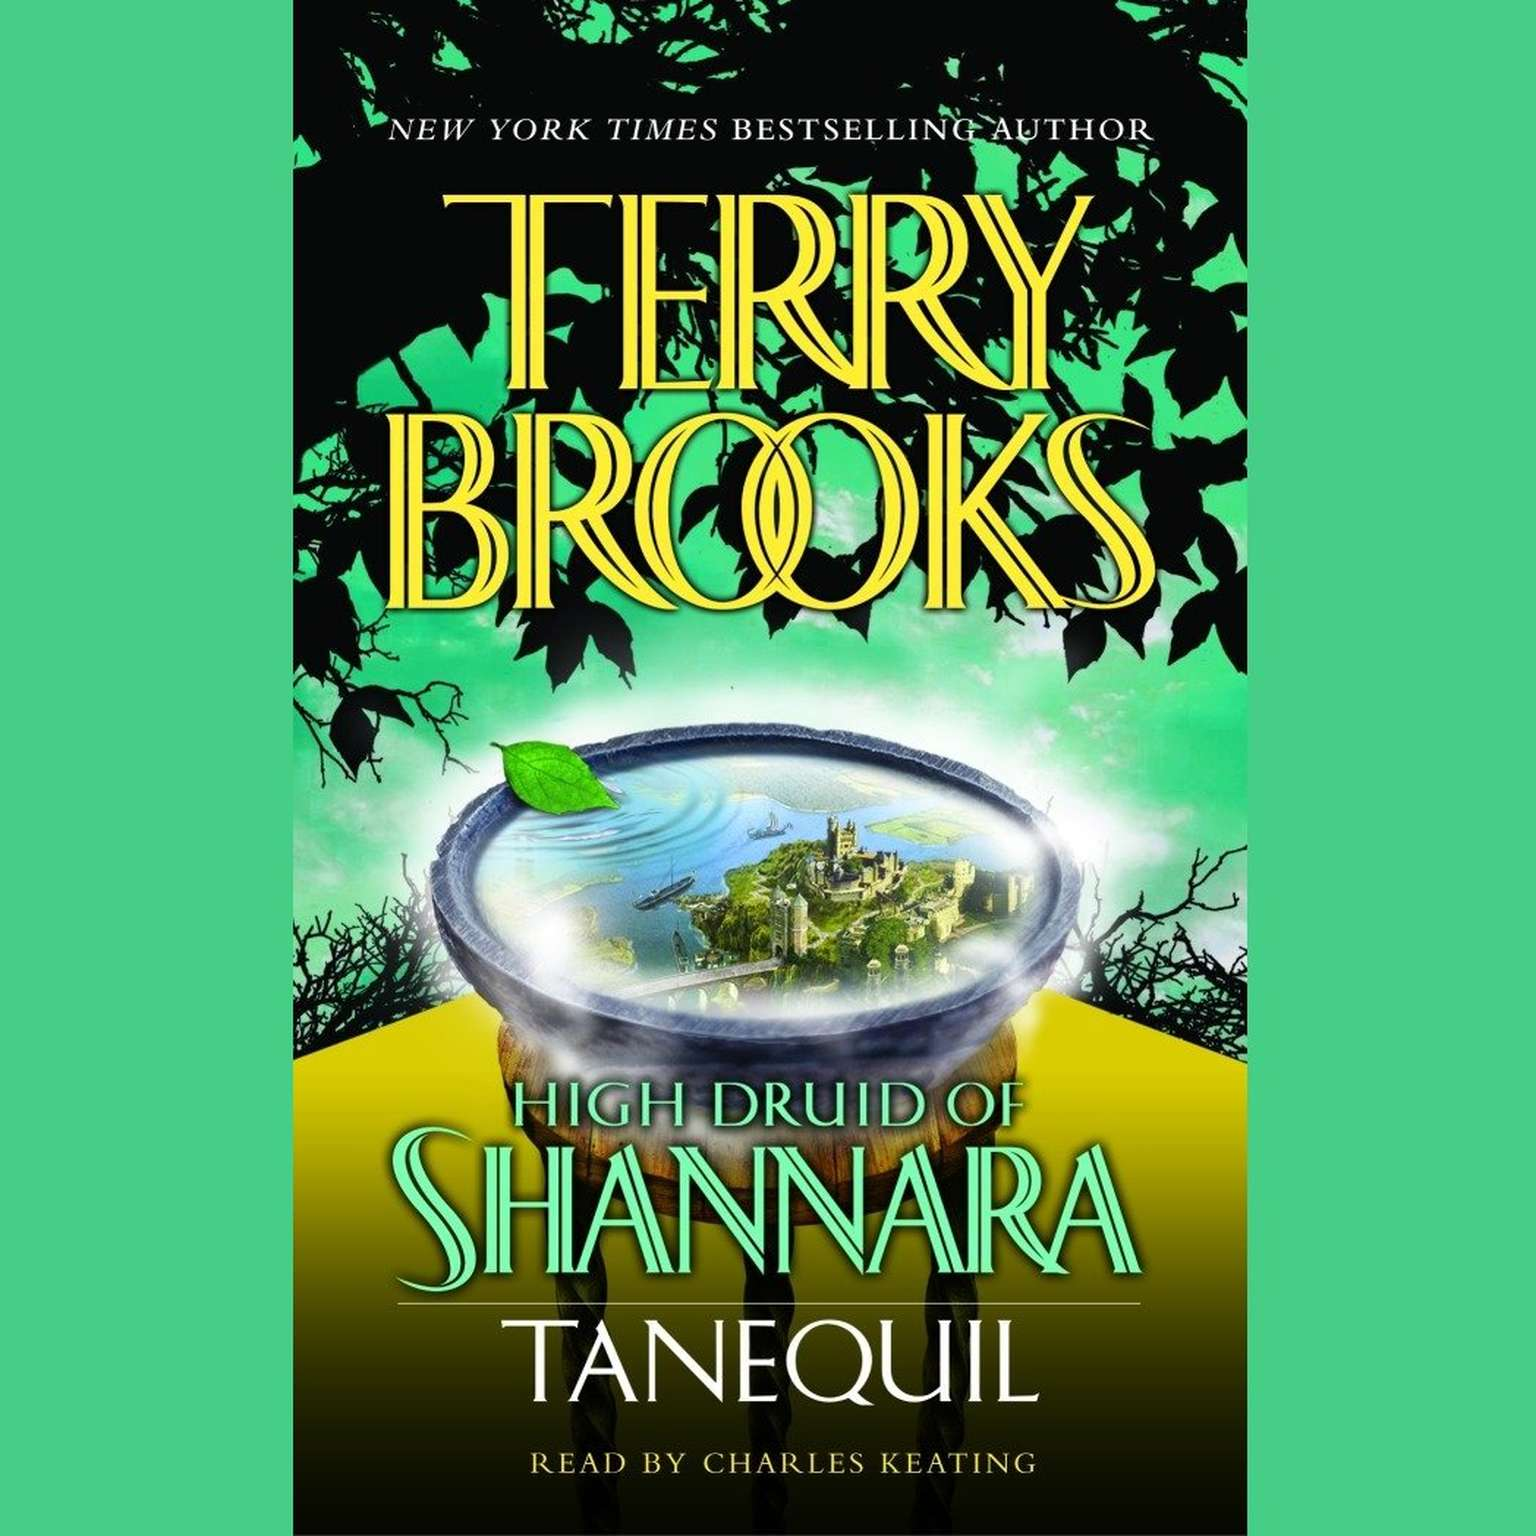 Printable High Druid of Shannara: Tanequil Audiobook Cover Art